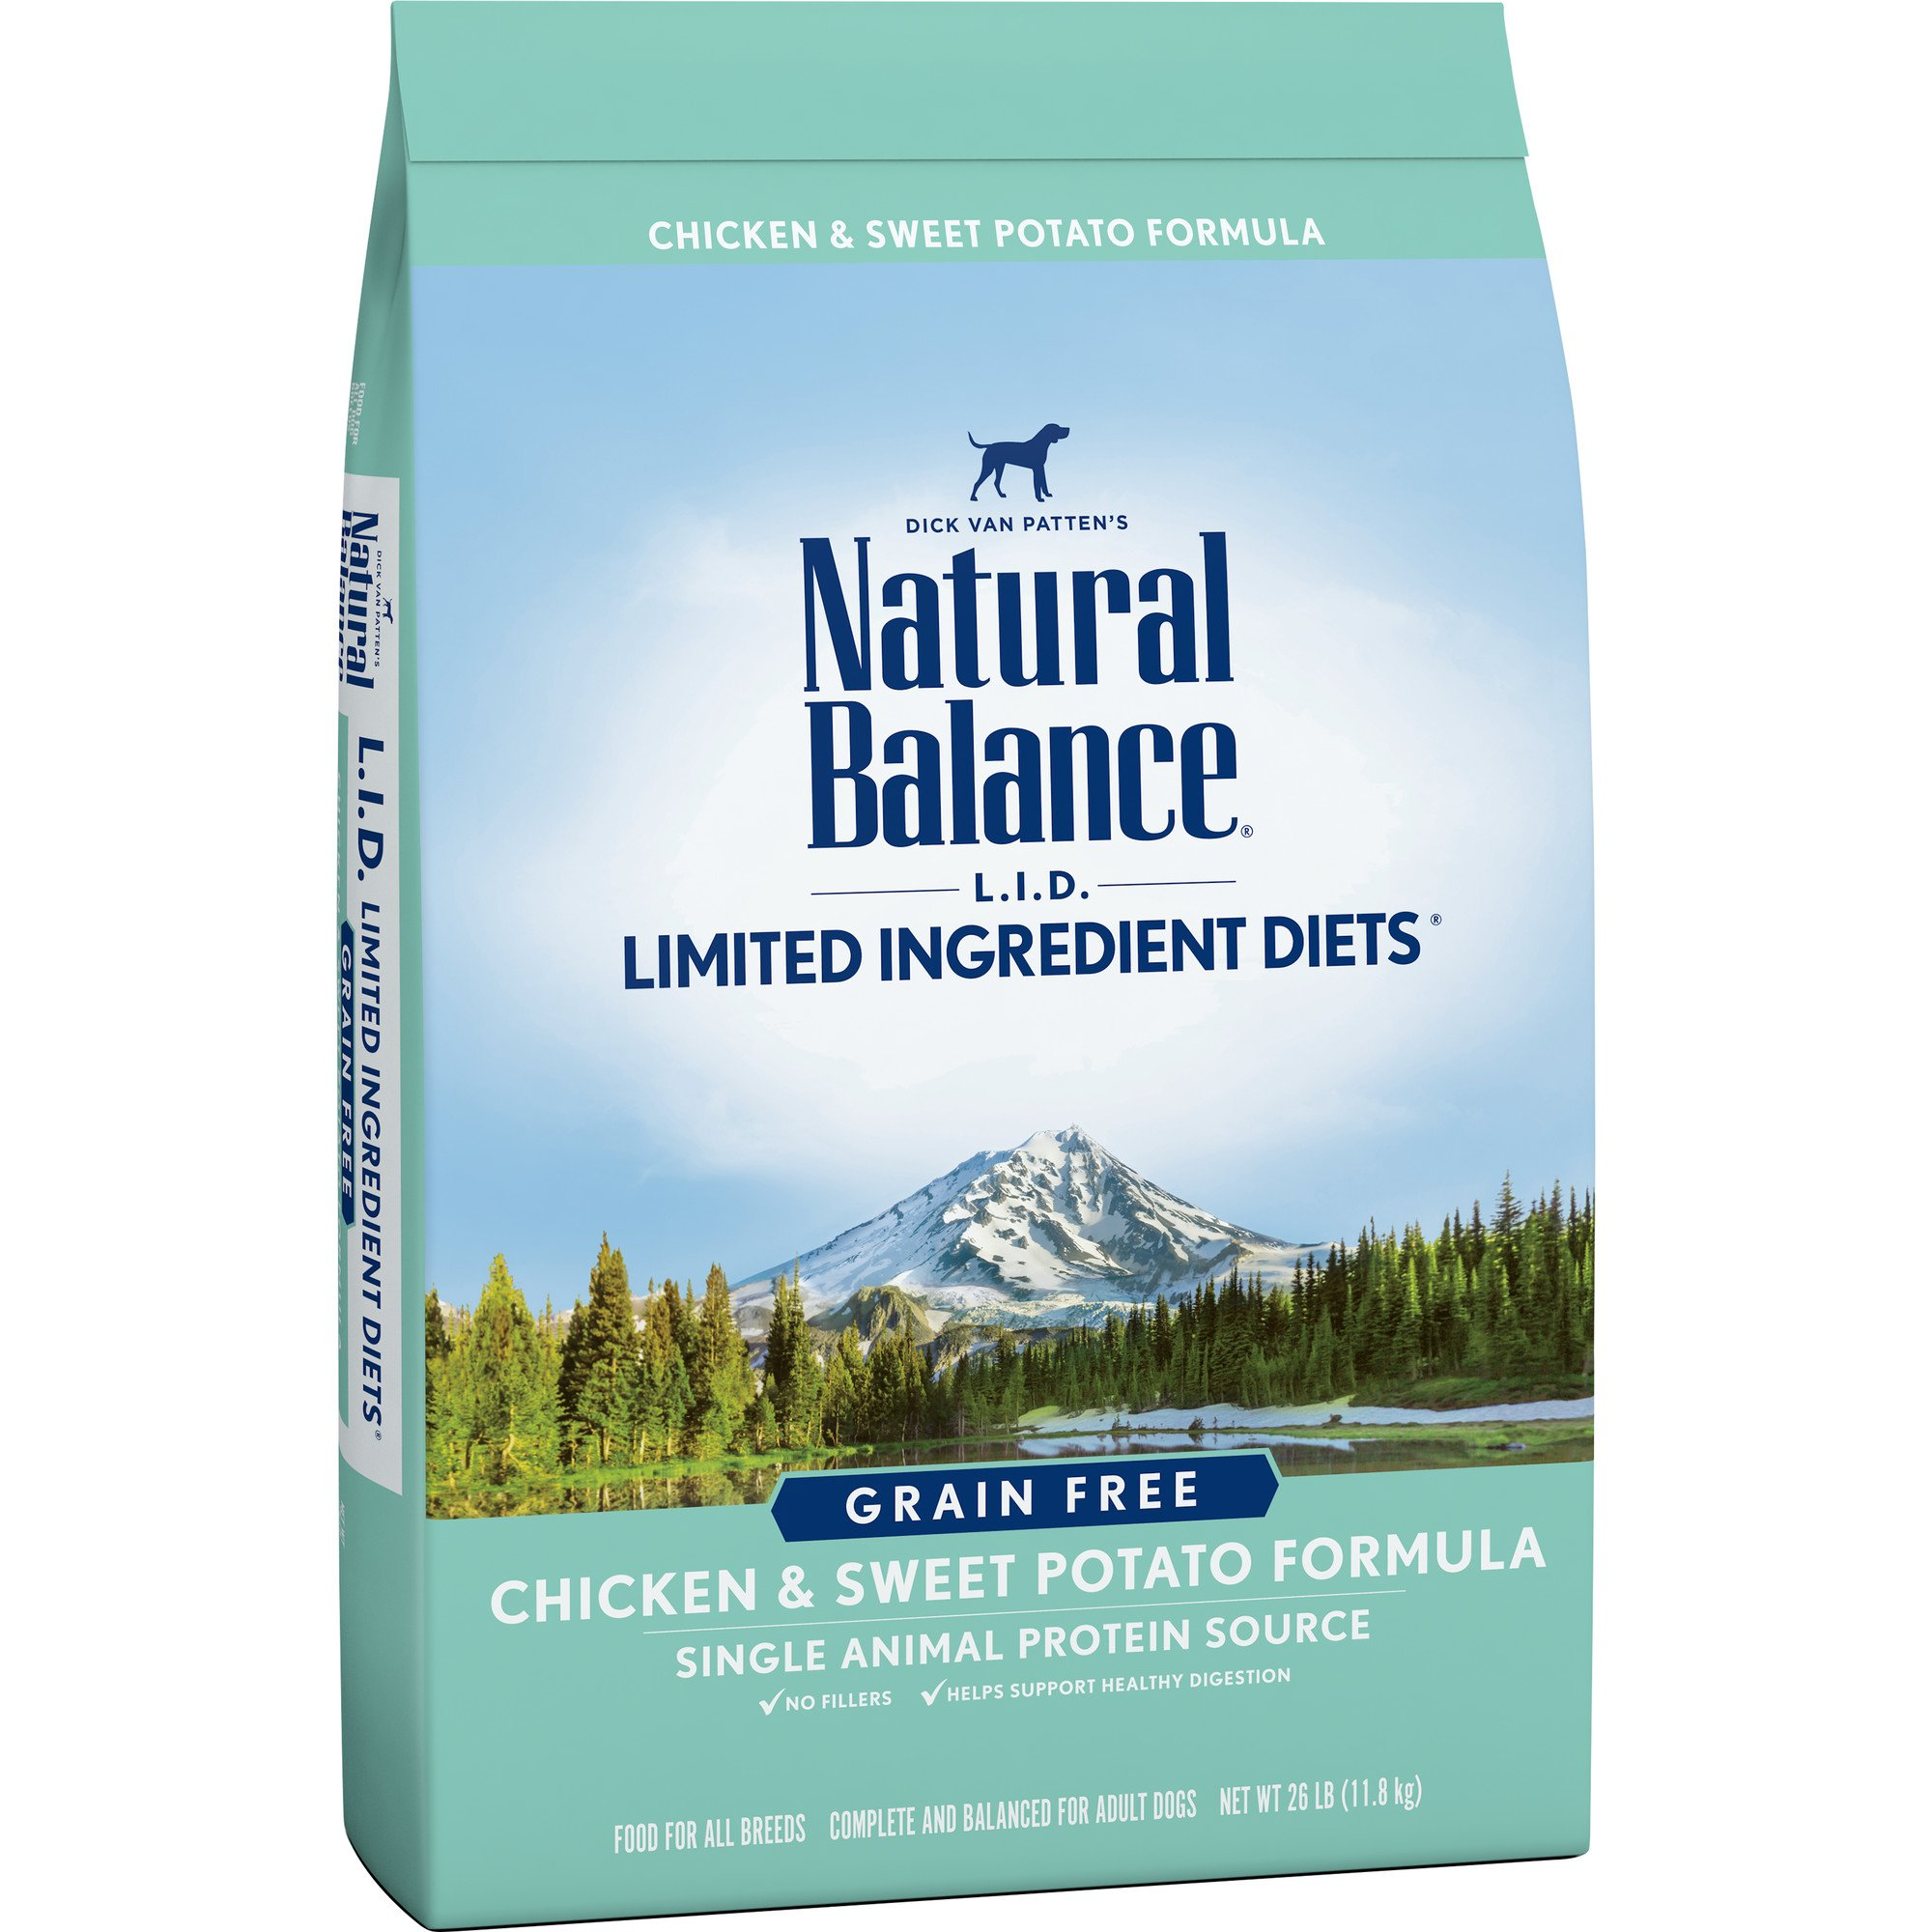 Natural Balance L.I.D. Limited Ingredient Diets Dry Dog Food, Grain Free, Chicken & Sweet Potato Formula, 26-Pound